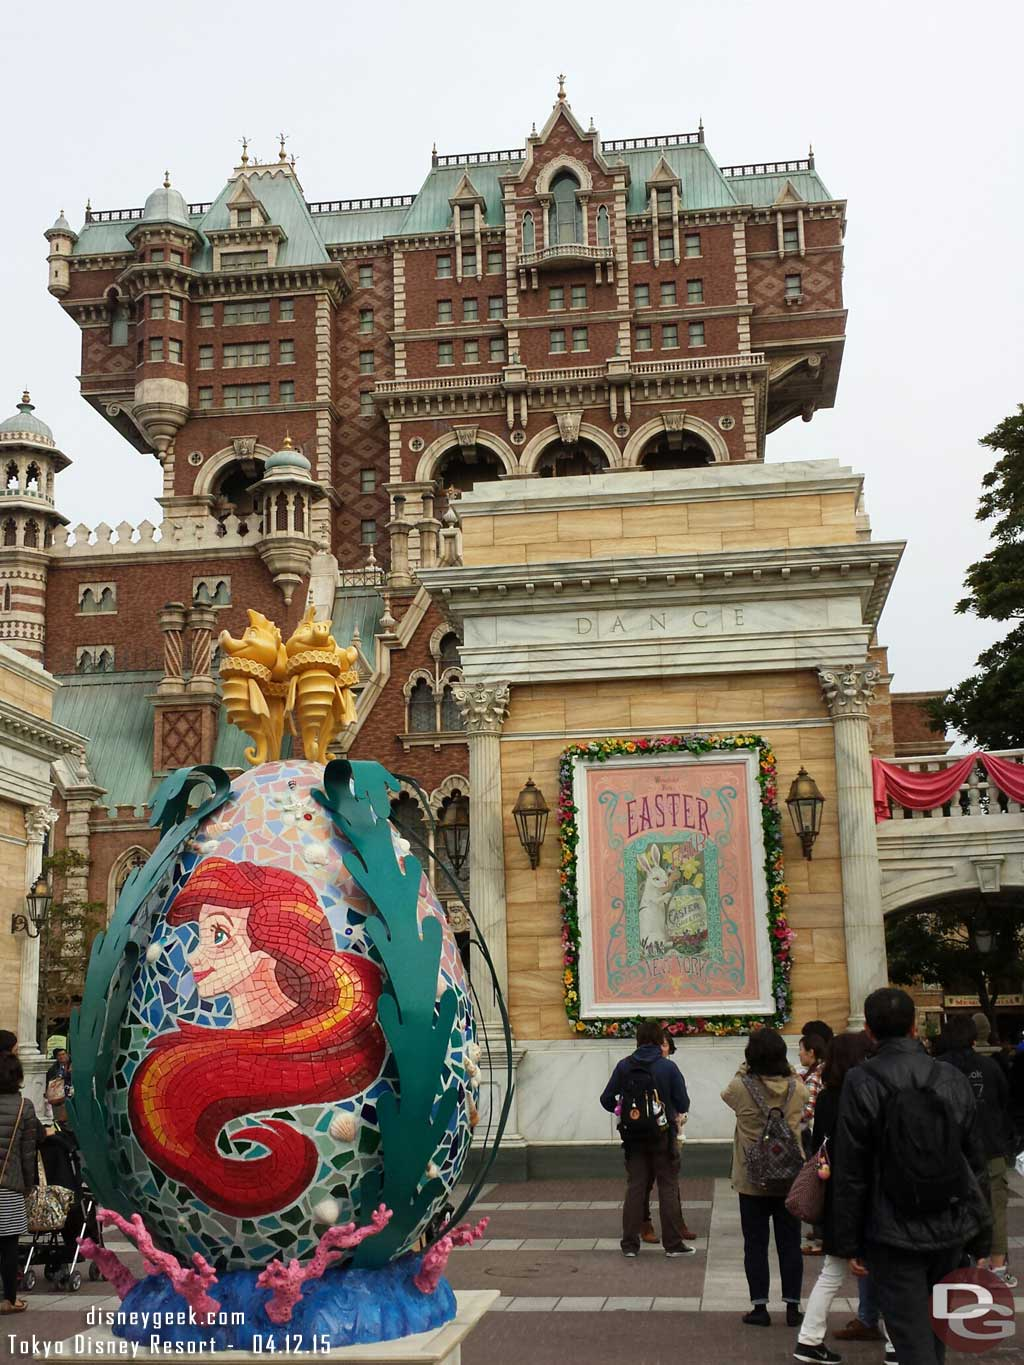 The Little Mermaid Easter Egg in the American Waterfront at #TokyoDisneySea #TDR